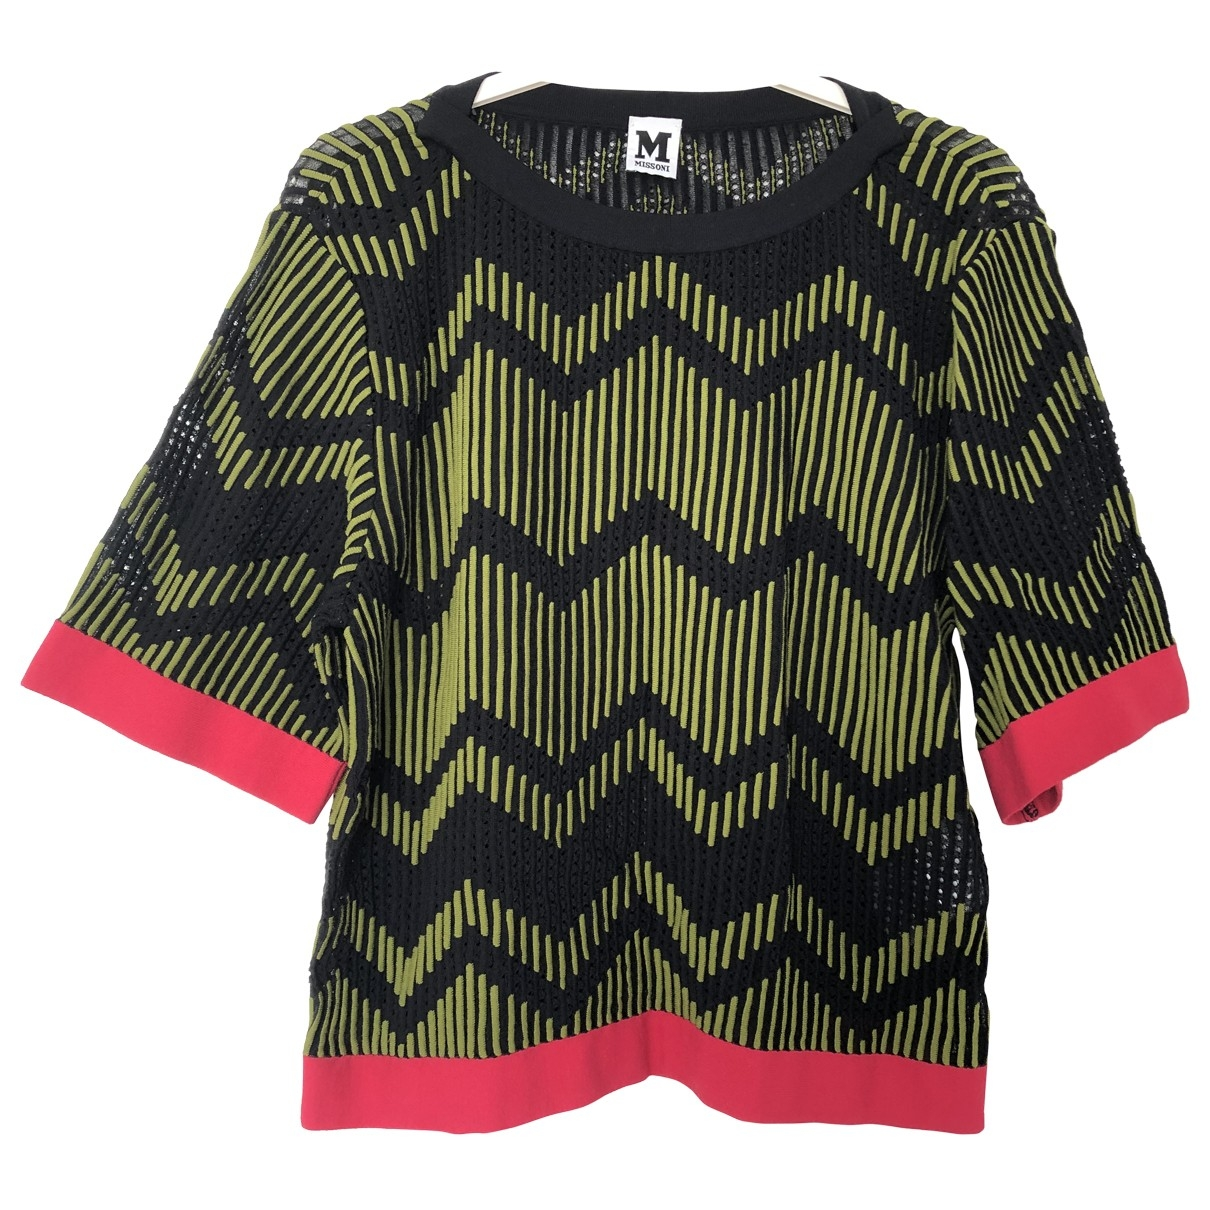 M Missoni \N Green Cotton  top for Women M